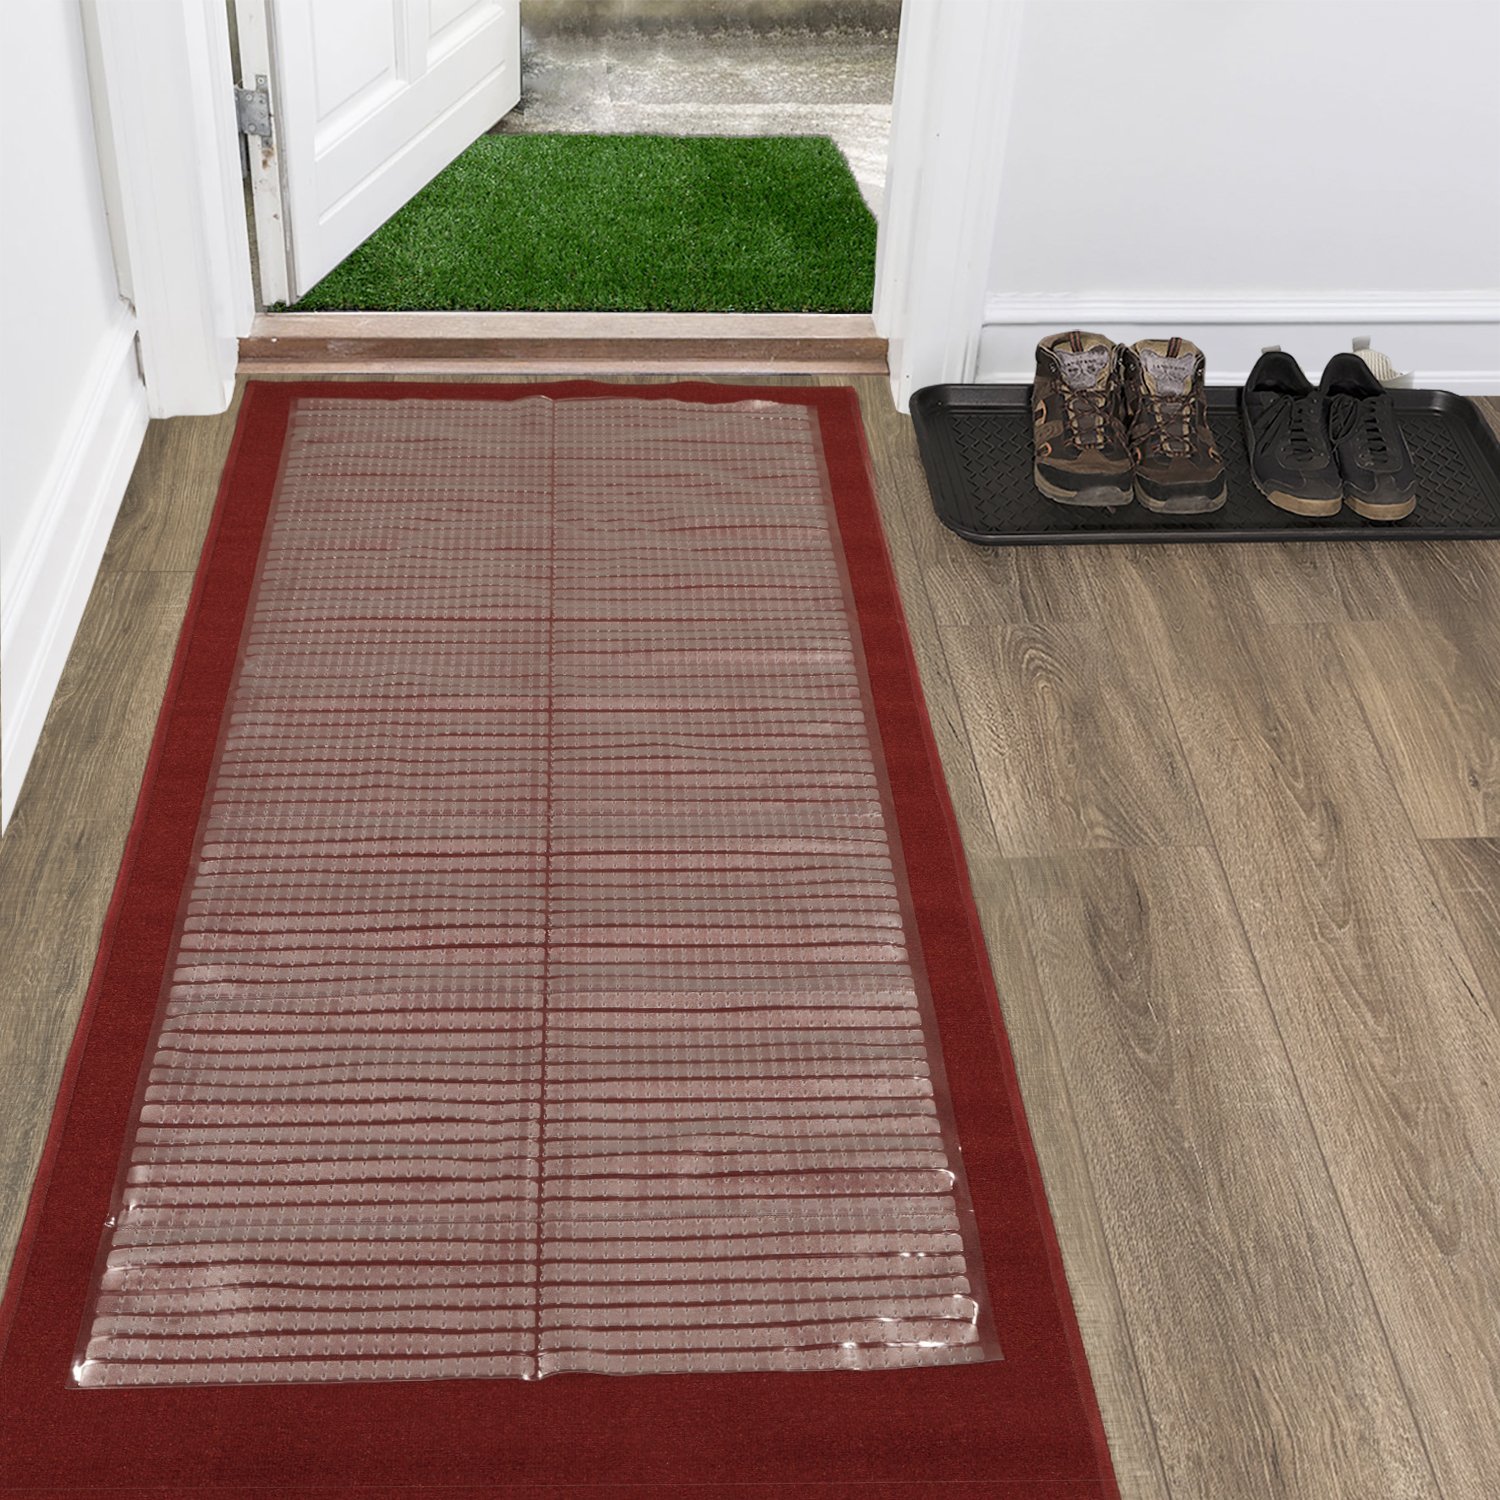 Ottomanson Multi Grip Ribbed Clear Runner Rug Carpet Protector Mat, Various Lengths 26 X 6' CCP101-26X6